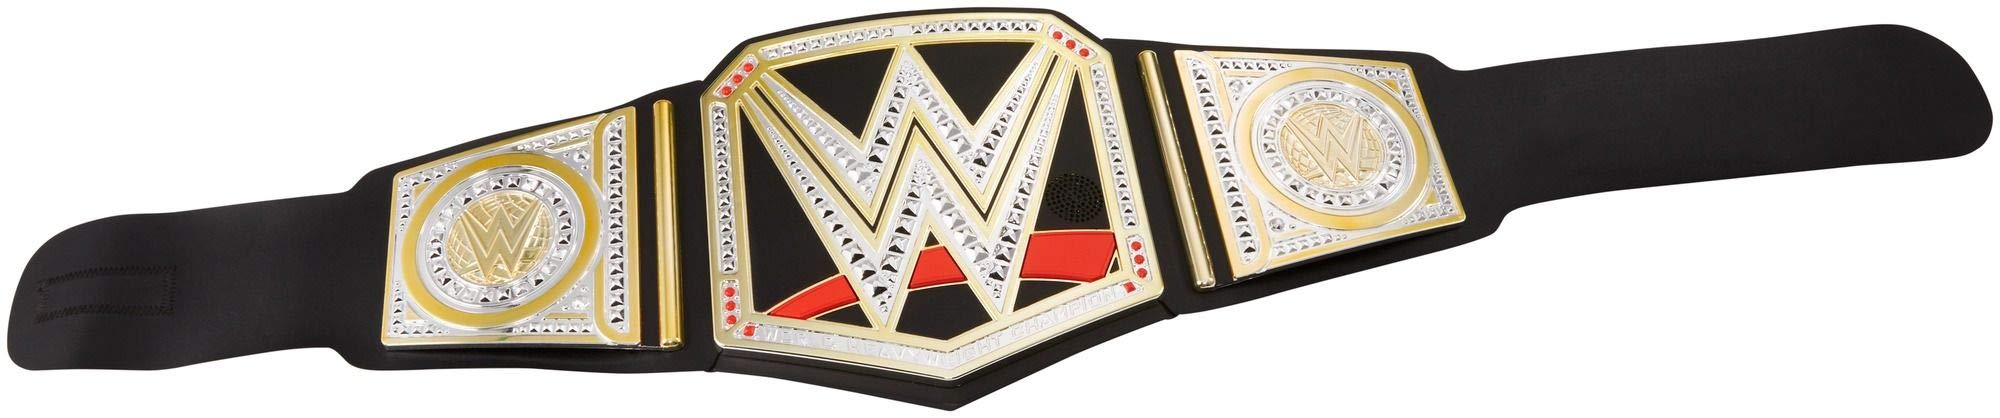 WWE Live Action Interactive Championship Playset by WWE (Image #2)